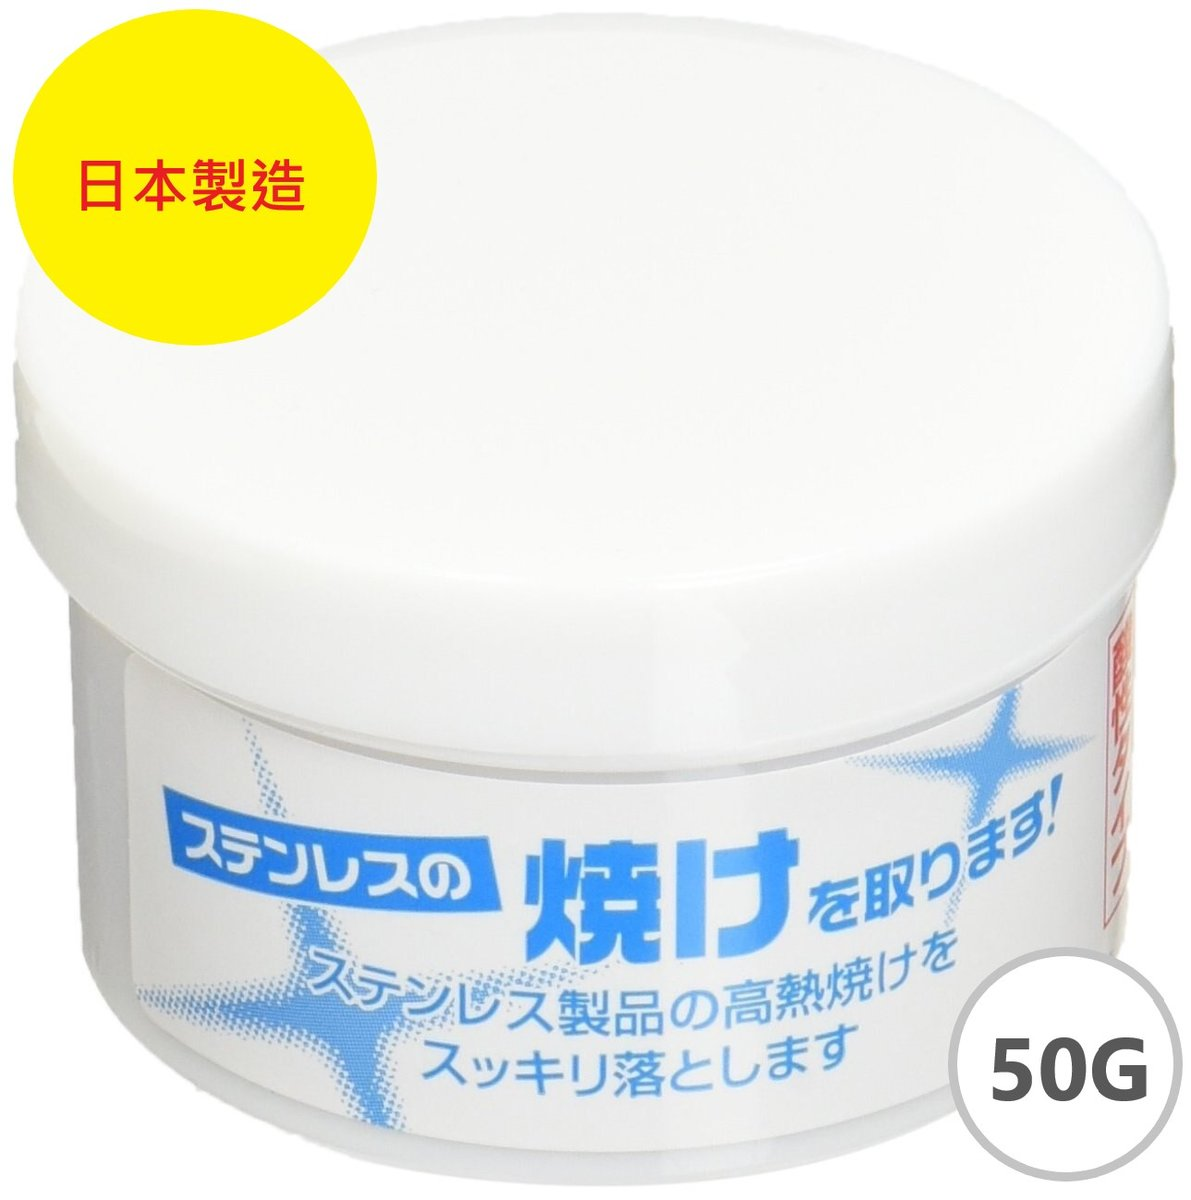 Stainless steel stain cleaner (061351)(Parallel Import goods)